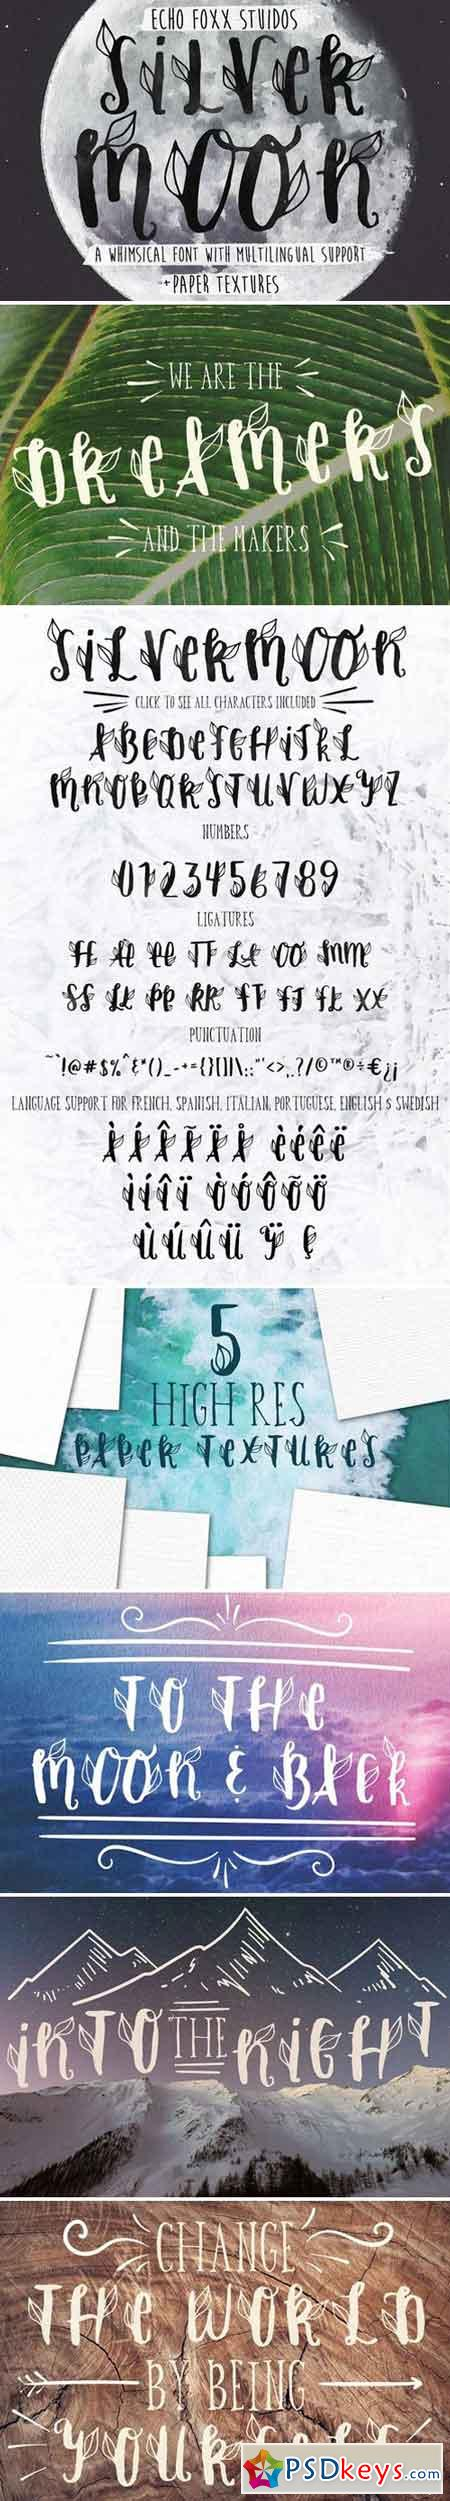 Silver Moon Font + Extras 2355658